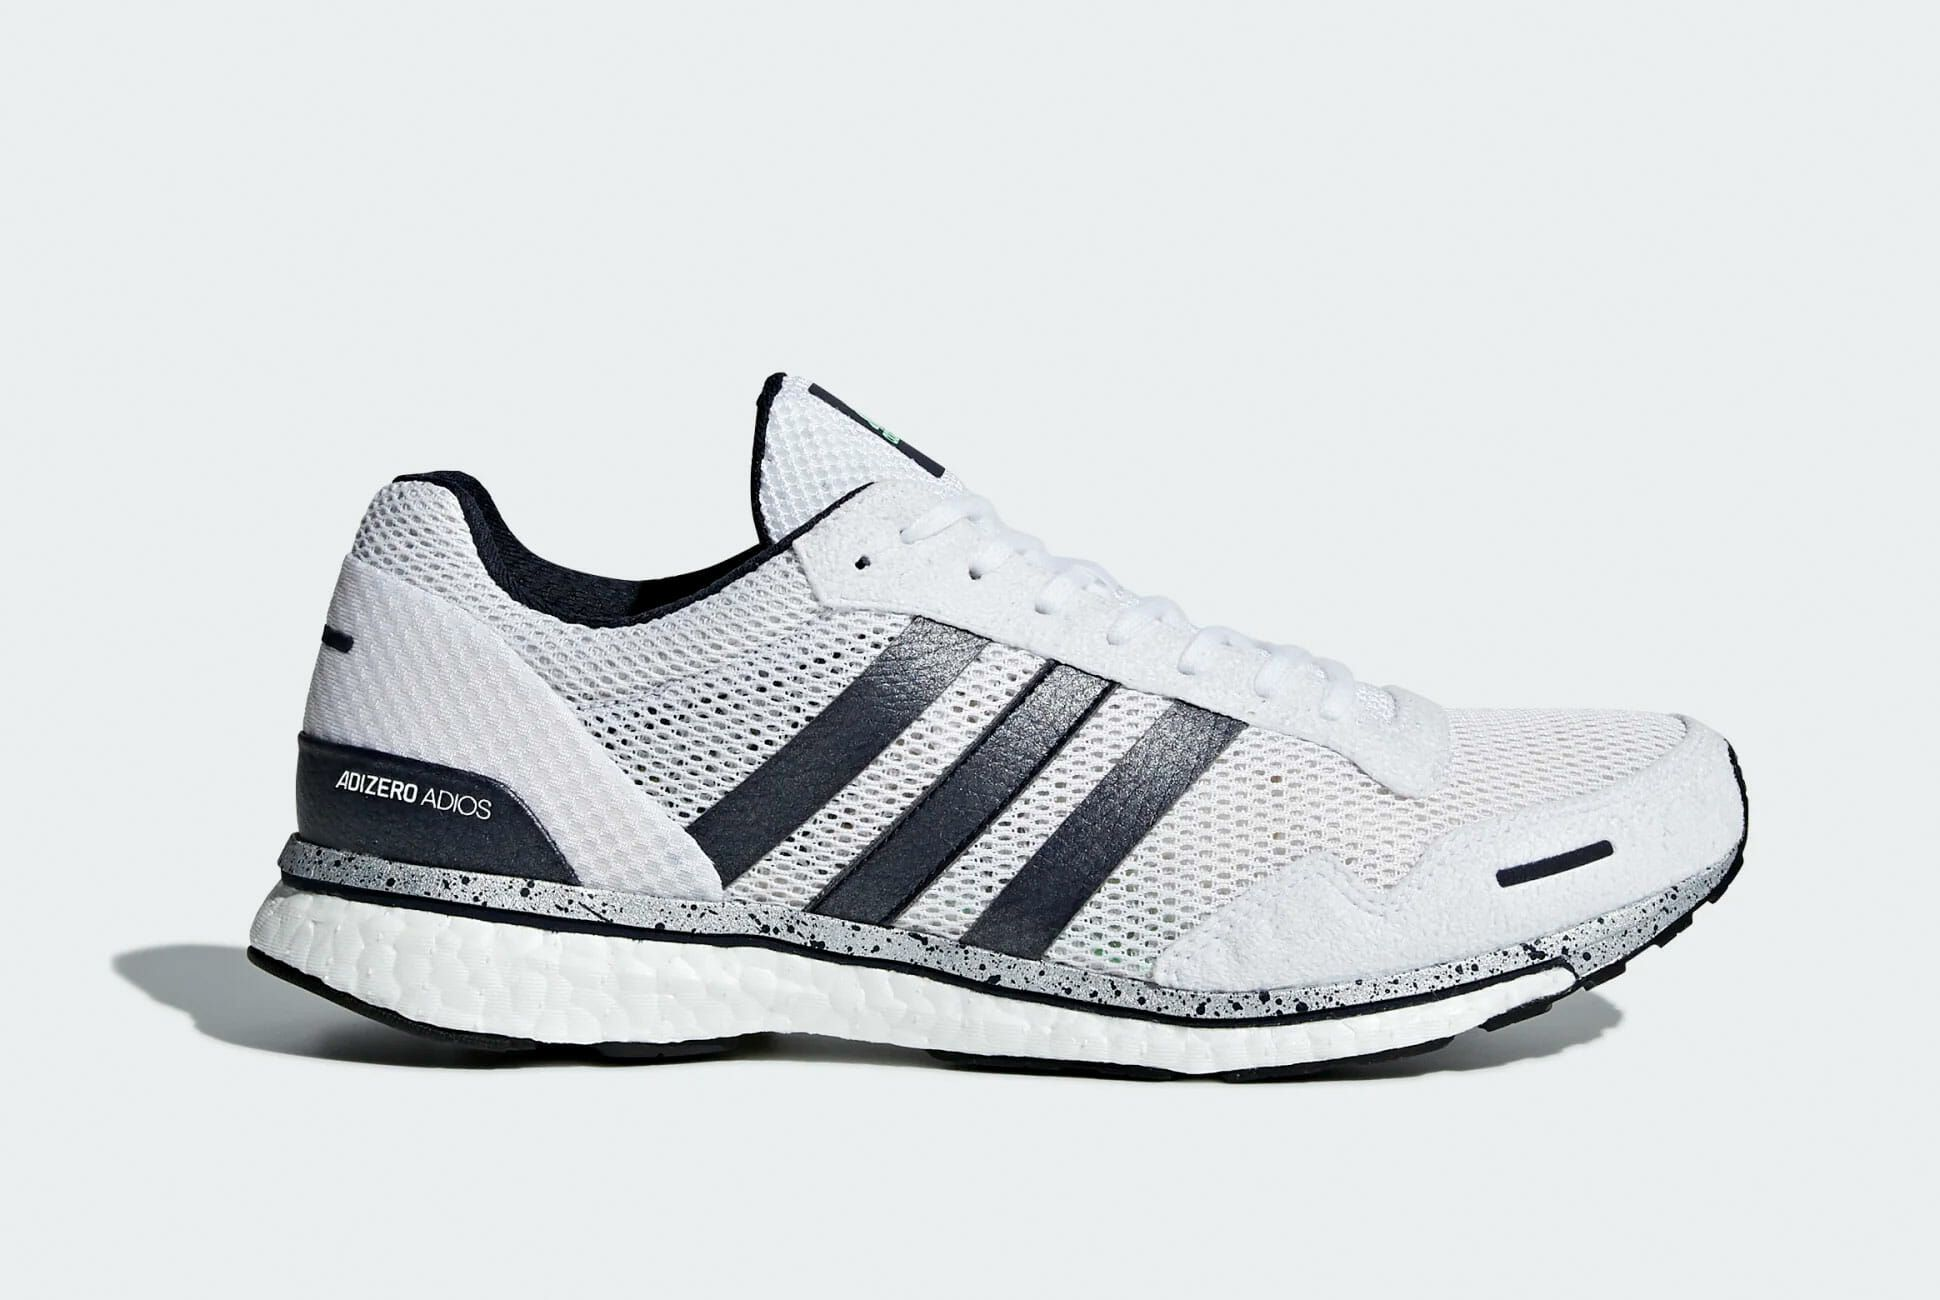 Adidas adizero Adios 3 Running Shoes Review YouTube